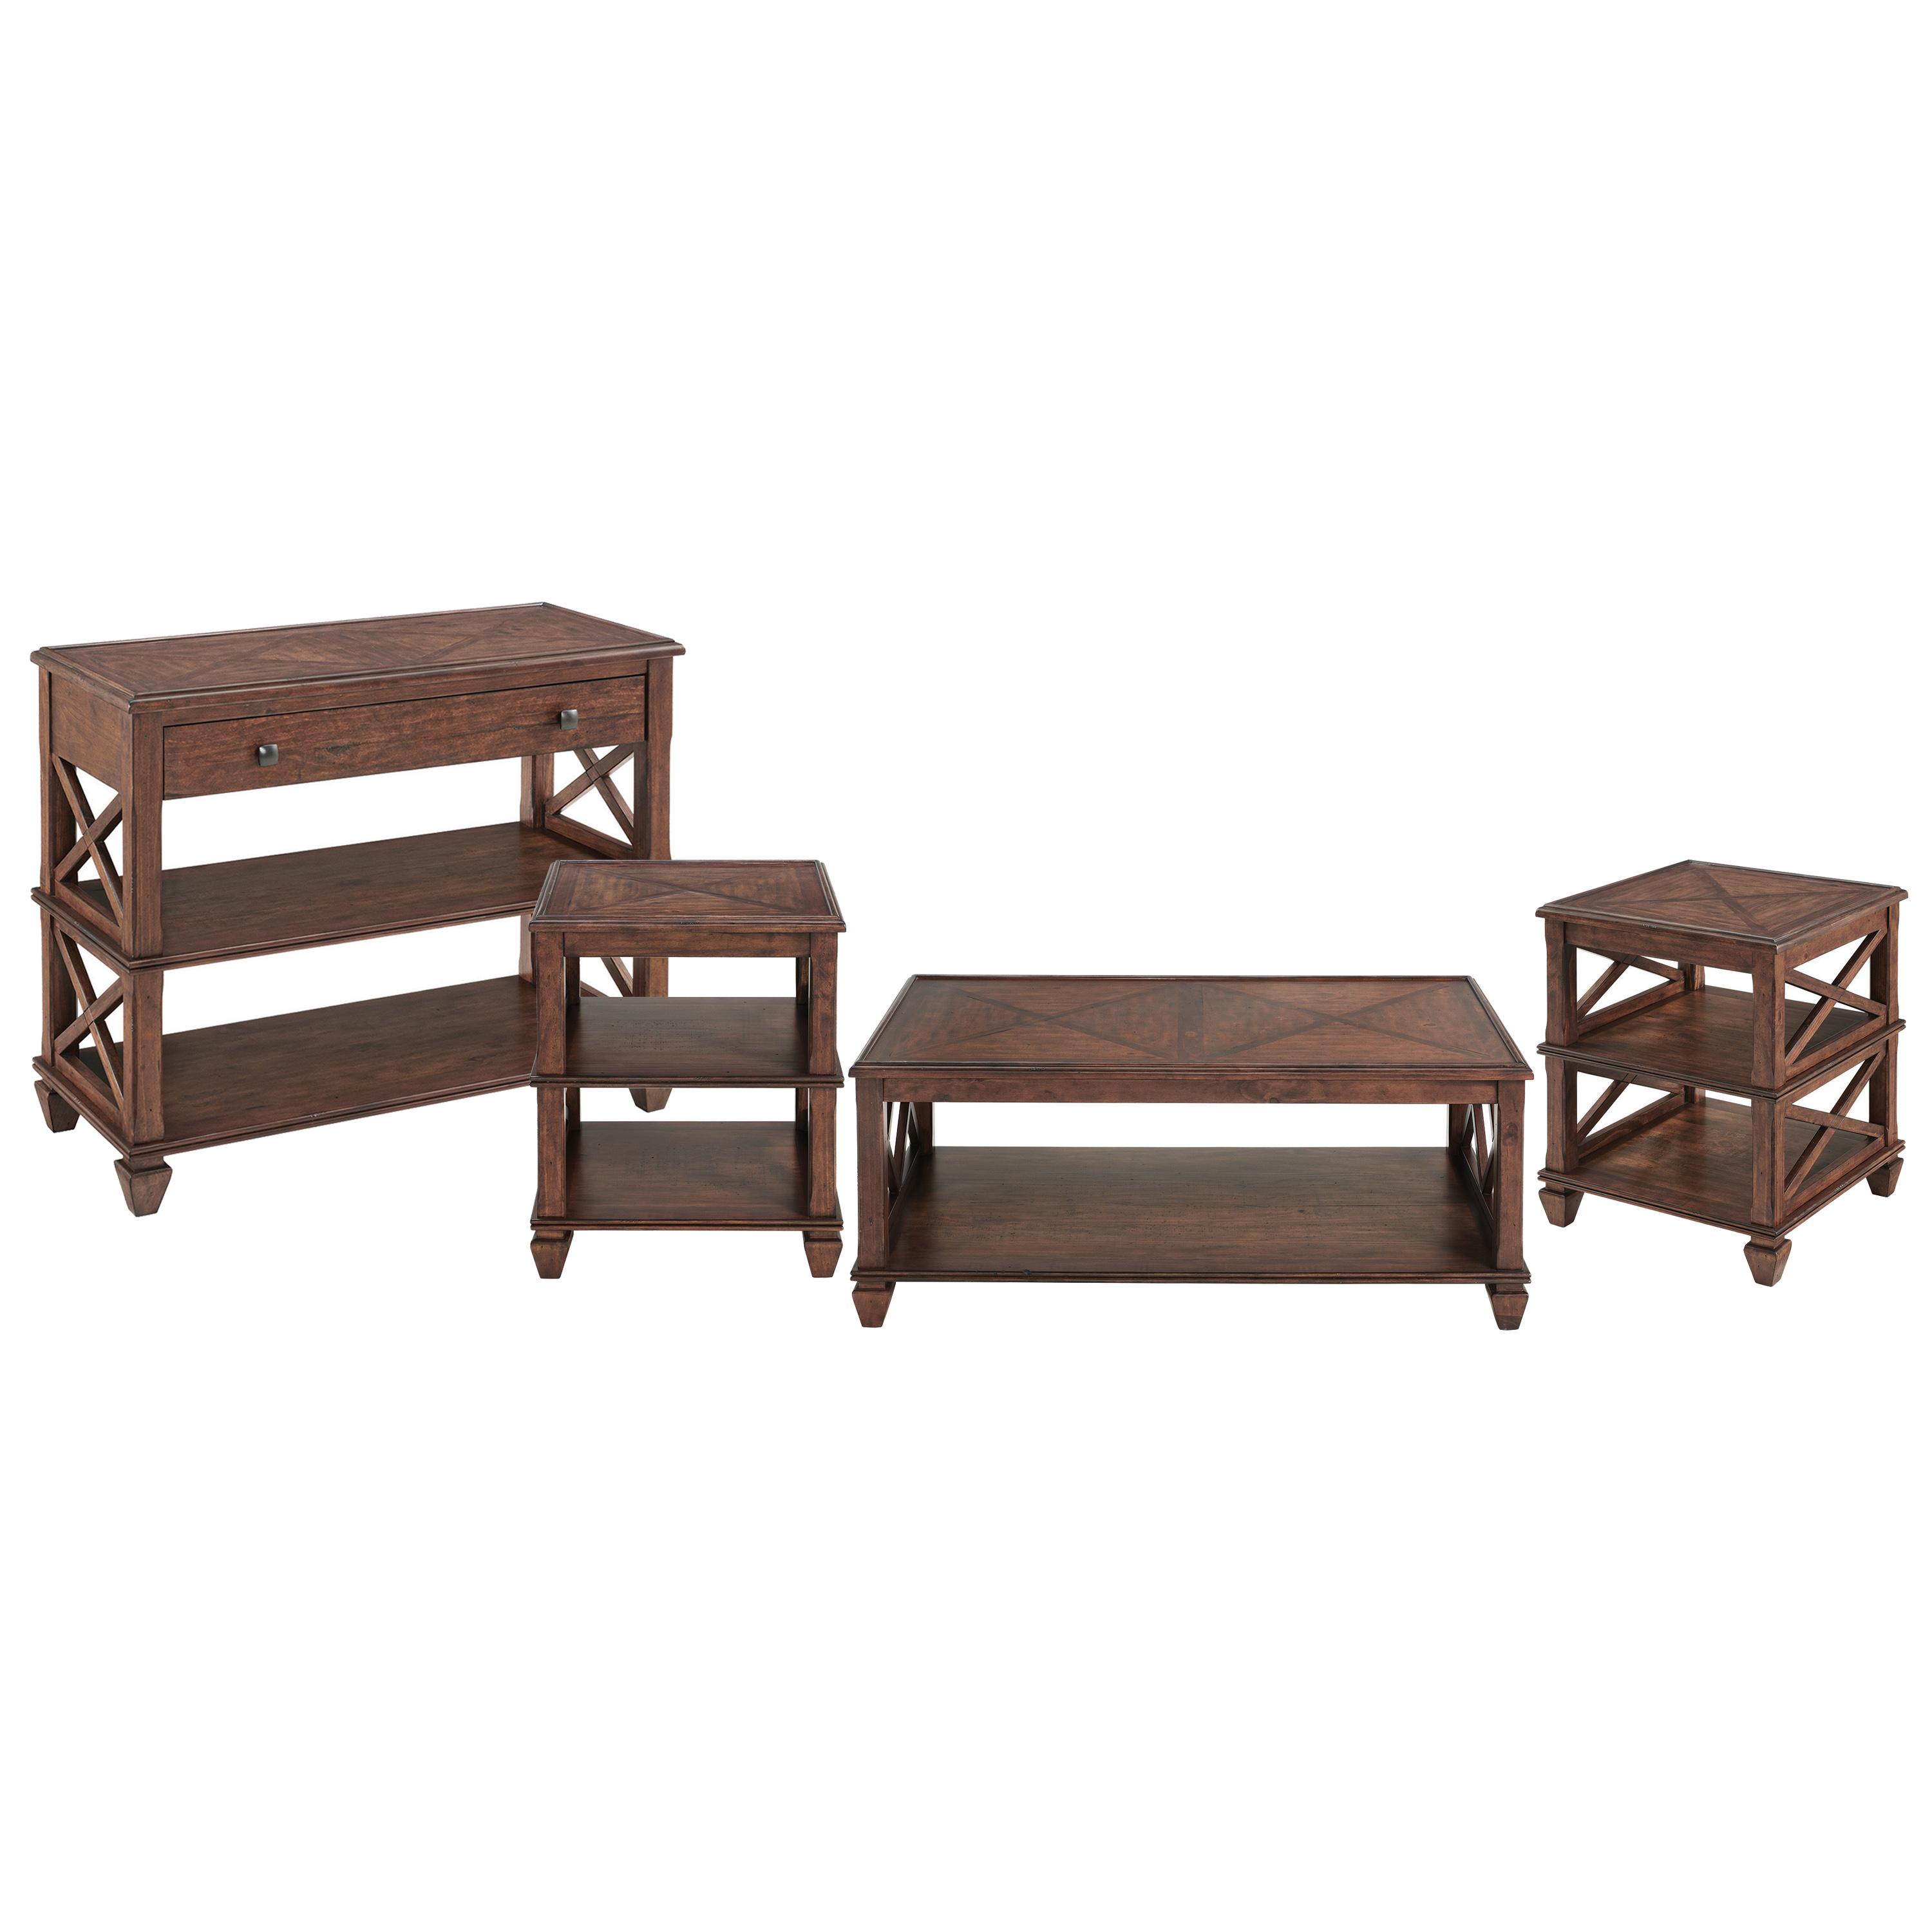 bolton furniture stockbridge 4 piece wood living room set with 45 l coffee table two square 2 shelf end tables and tv sofa console table